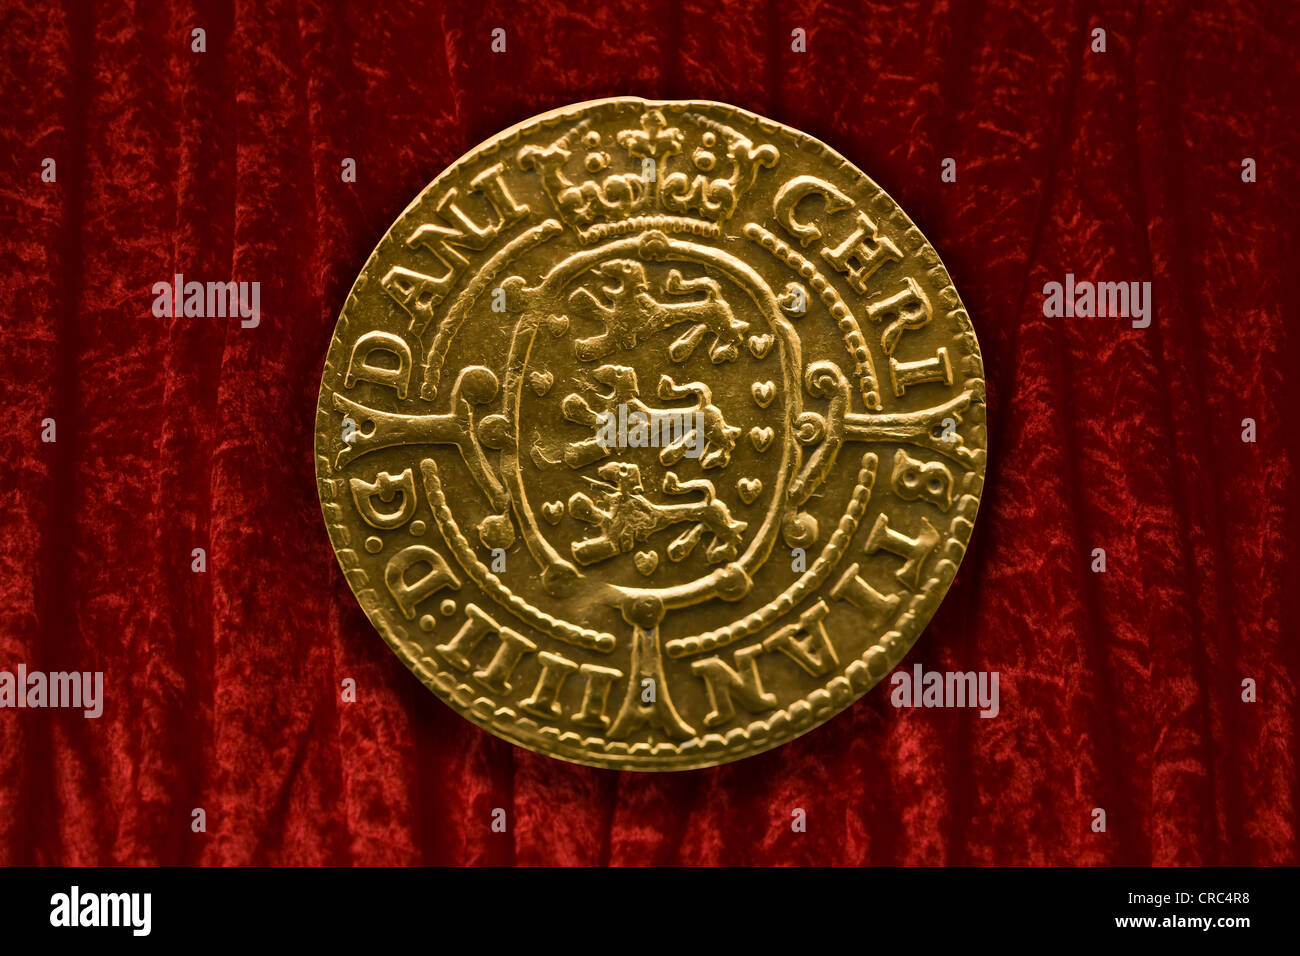 King Christian IV double gold krone coin from 1648 - Stock Image